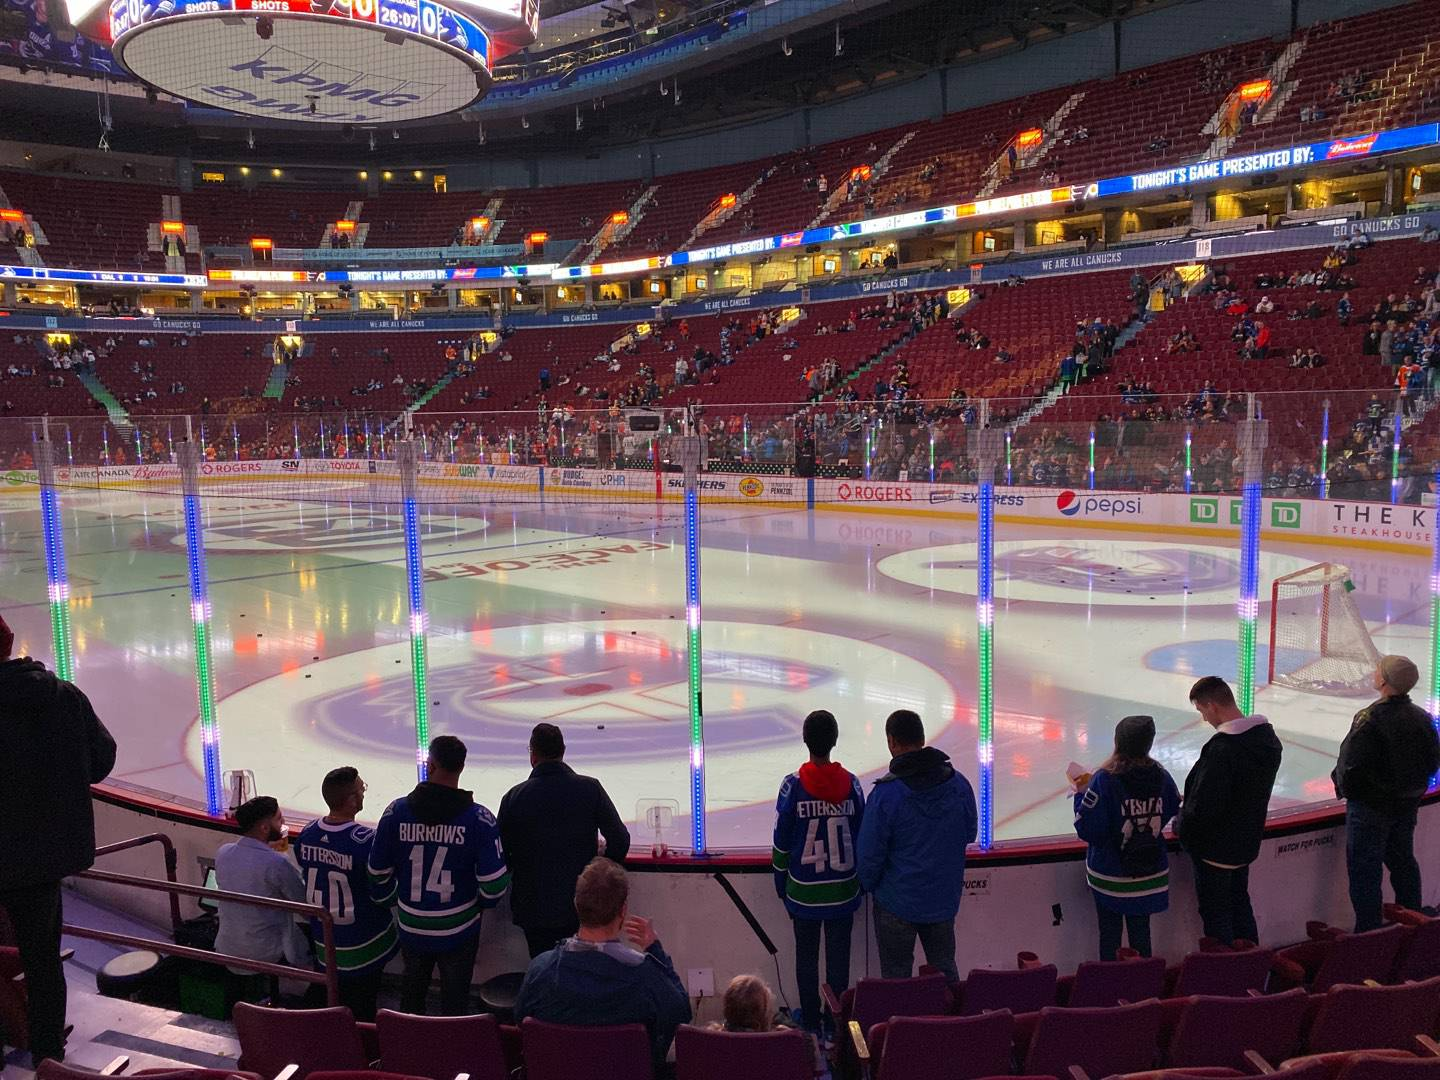 Rogers Arena Section 103 Row 7 Seat 6